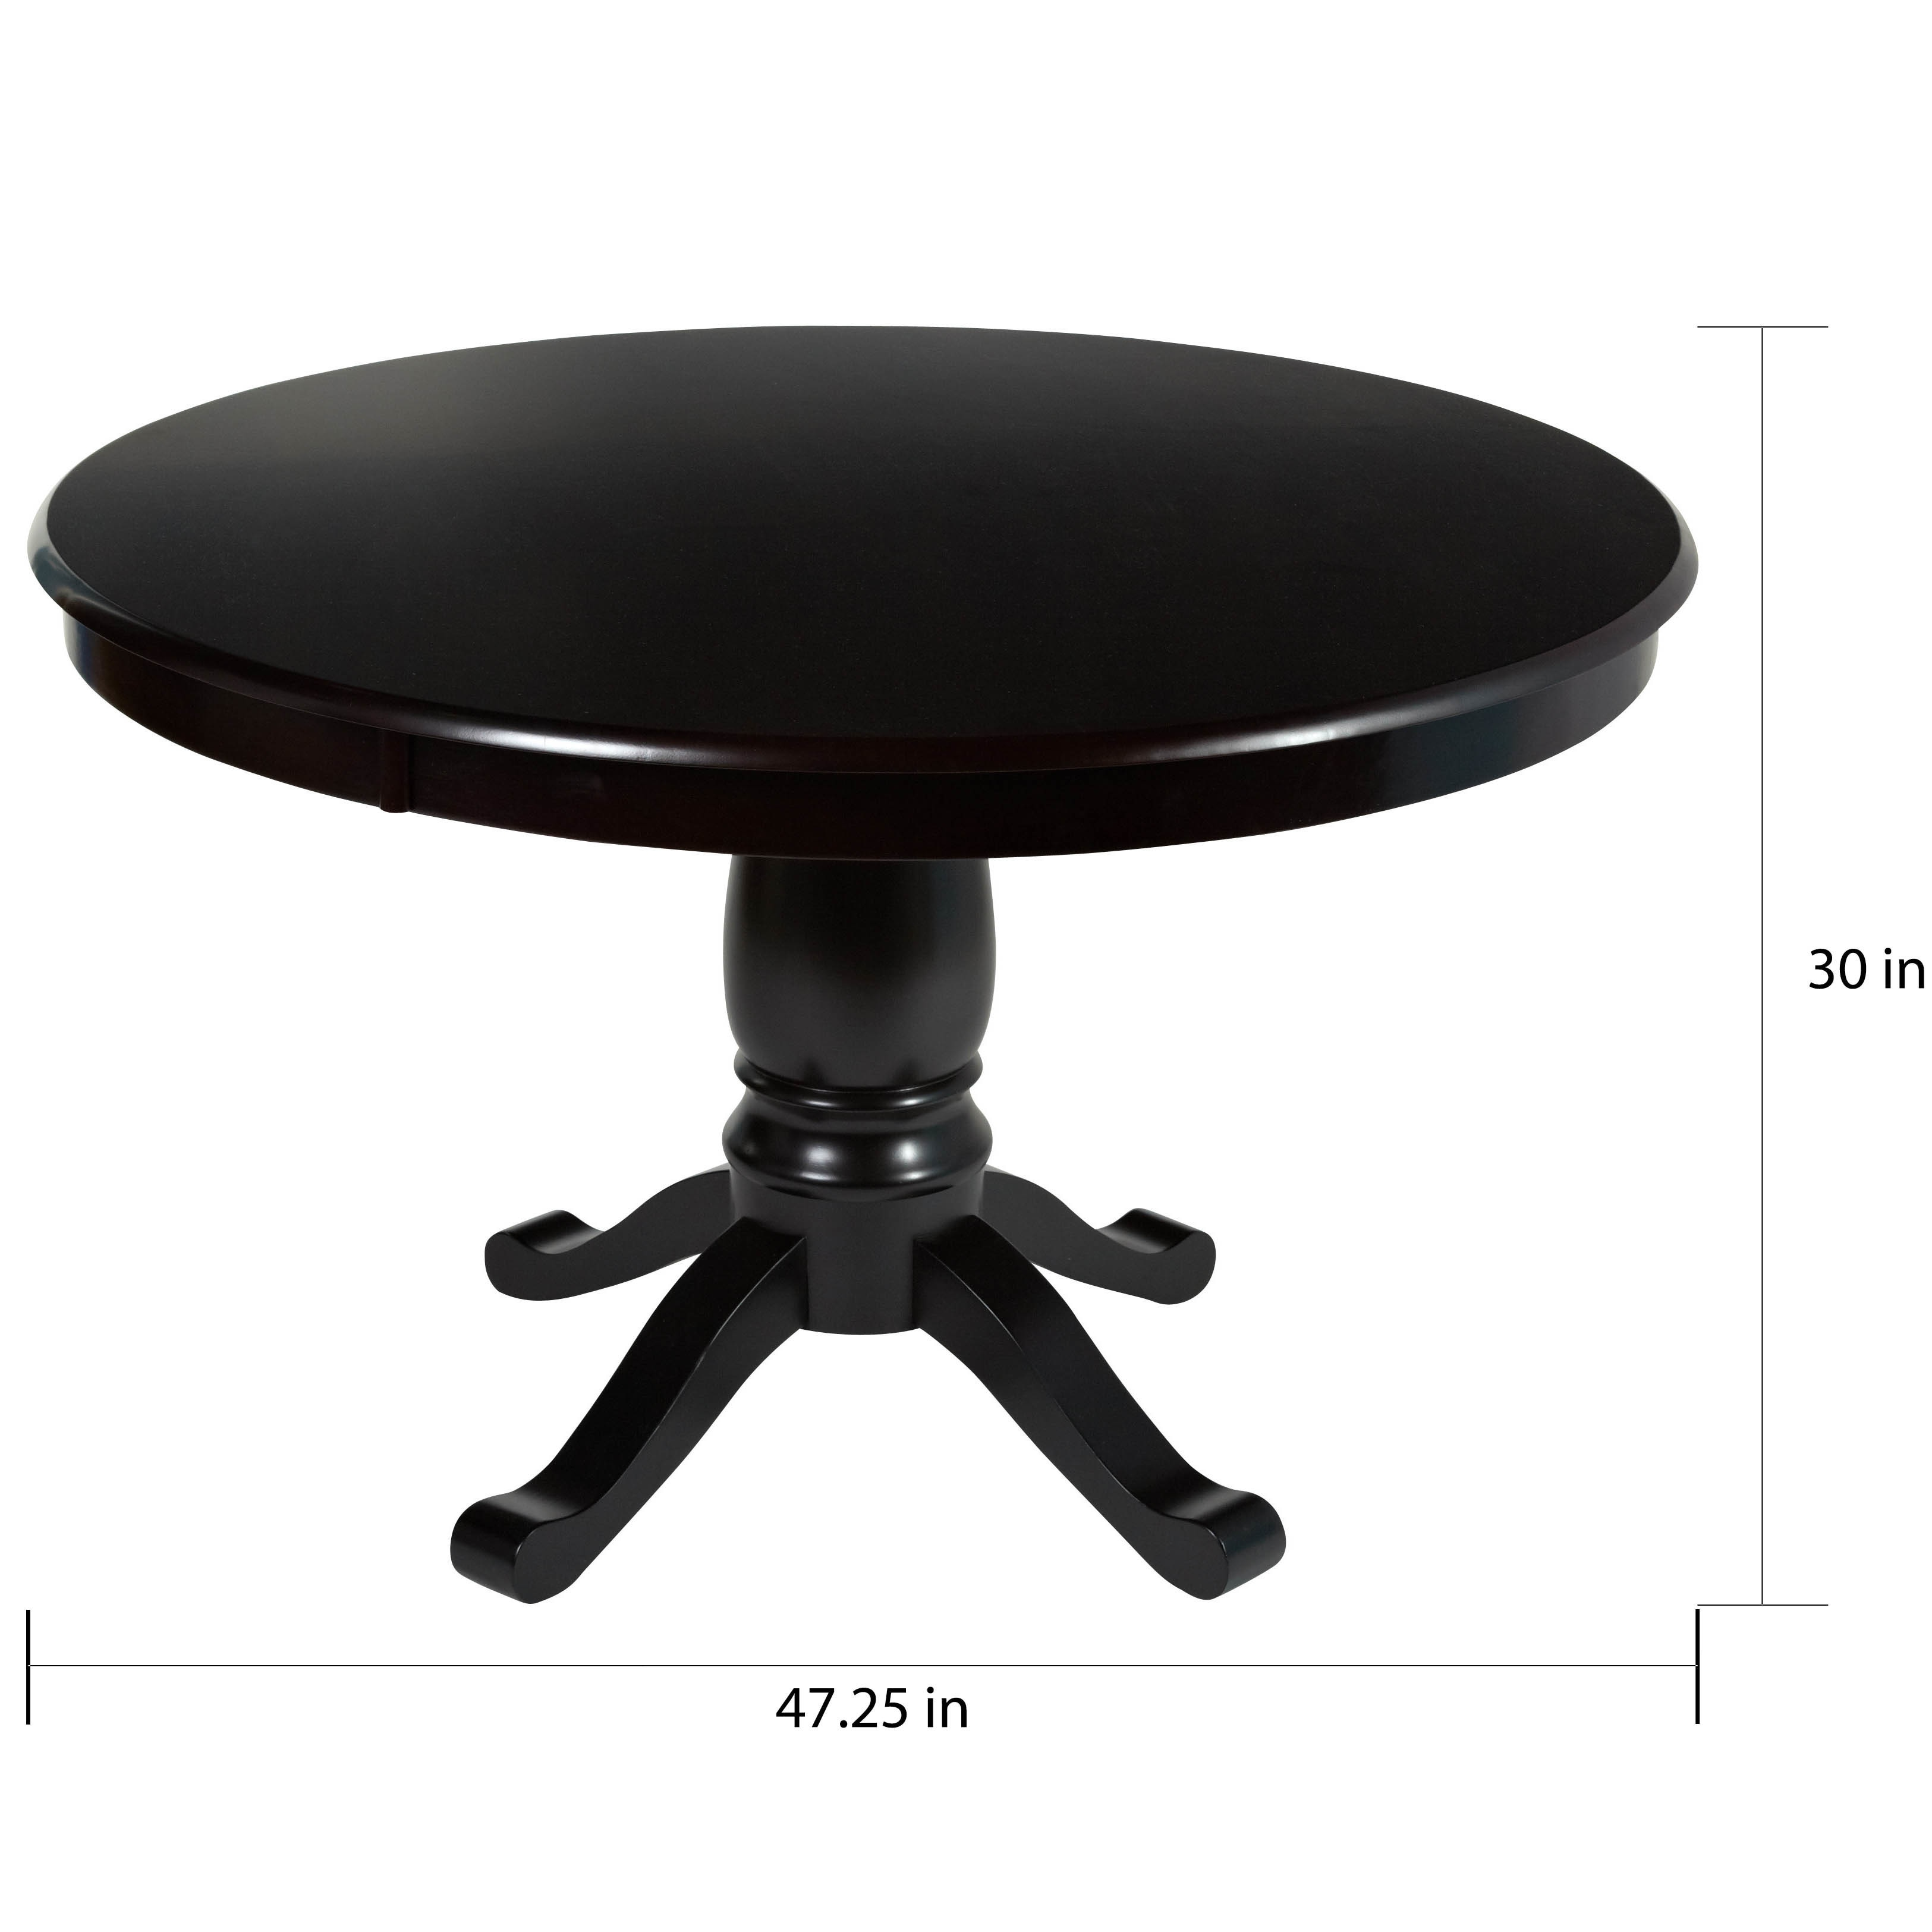 furniture chairs dining hooker by more back or with products black rectangle set table pedestal piece oval